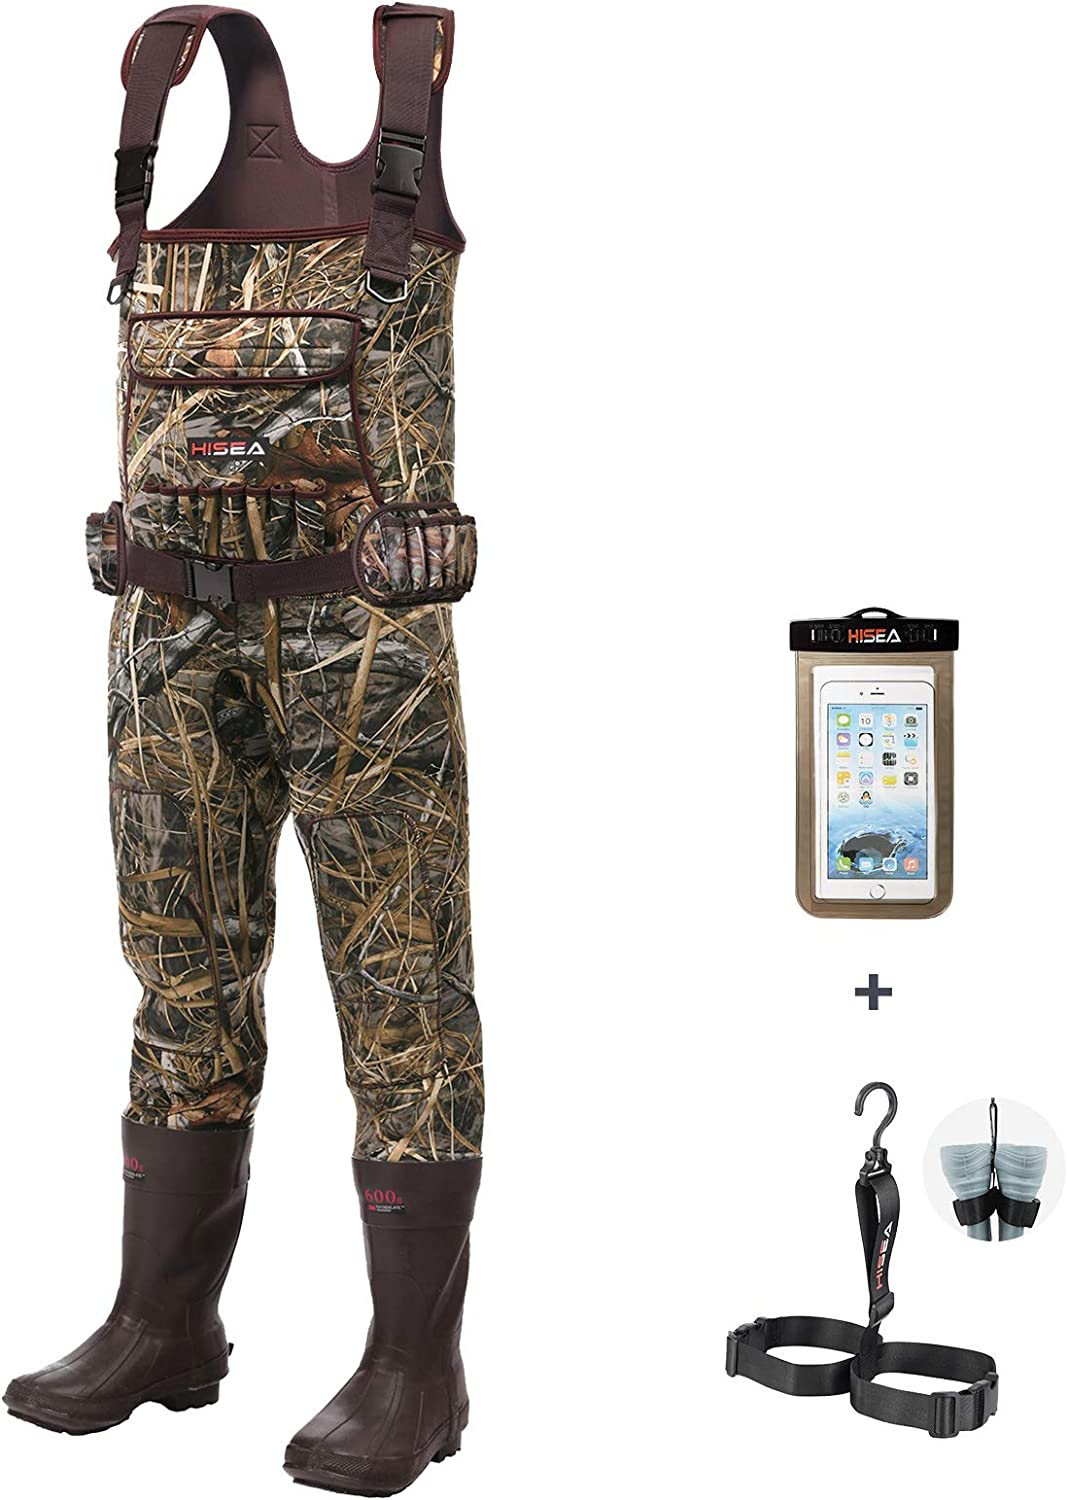 HISEA Chest Waders Neoprene Duck Hunting Waders for Men with 600G Insulated Boots Waterproof Camo Bootfoot Wader Hunting & Fishing Waders-Hang Belt Case Bag Included